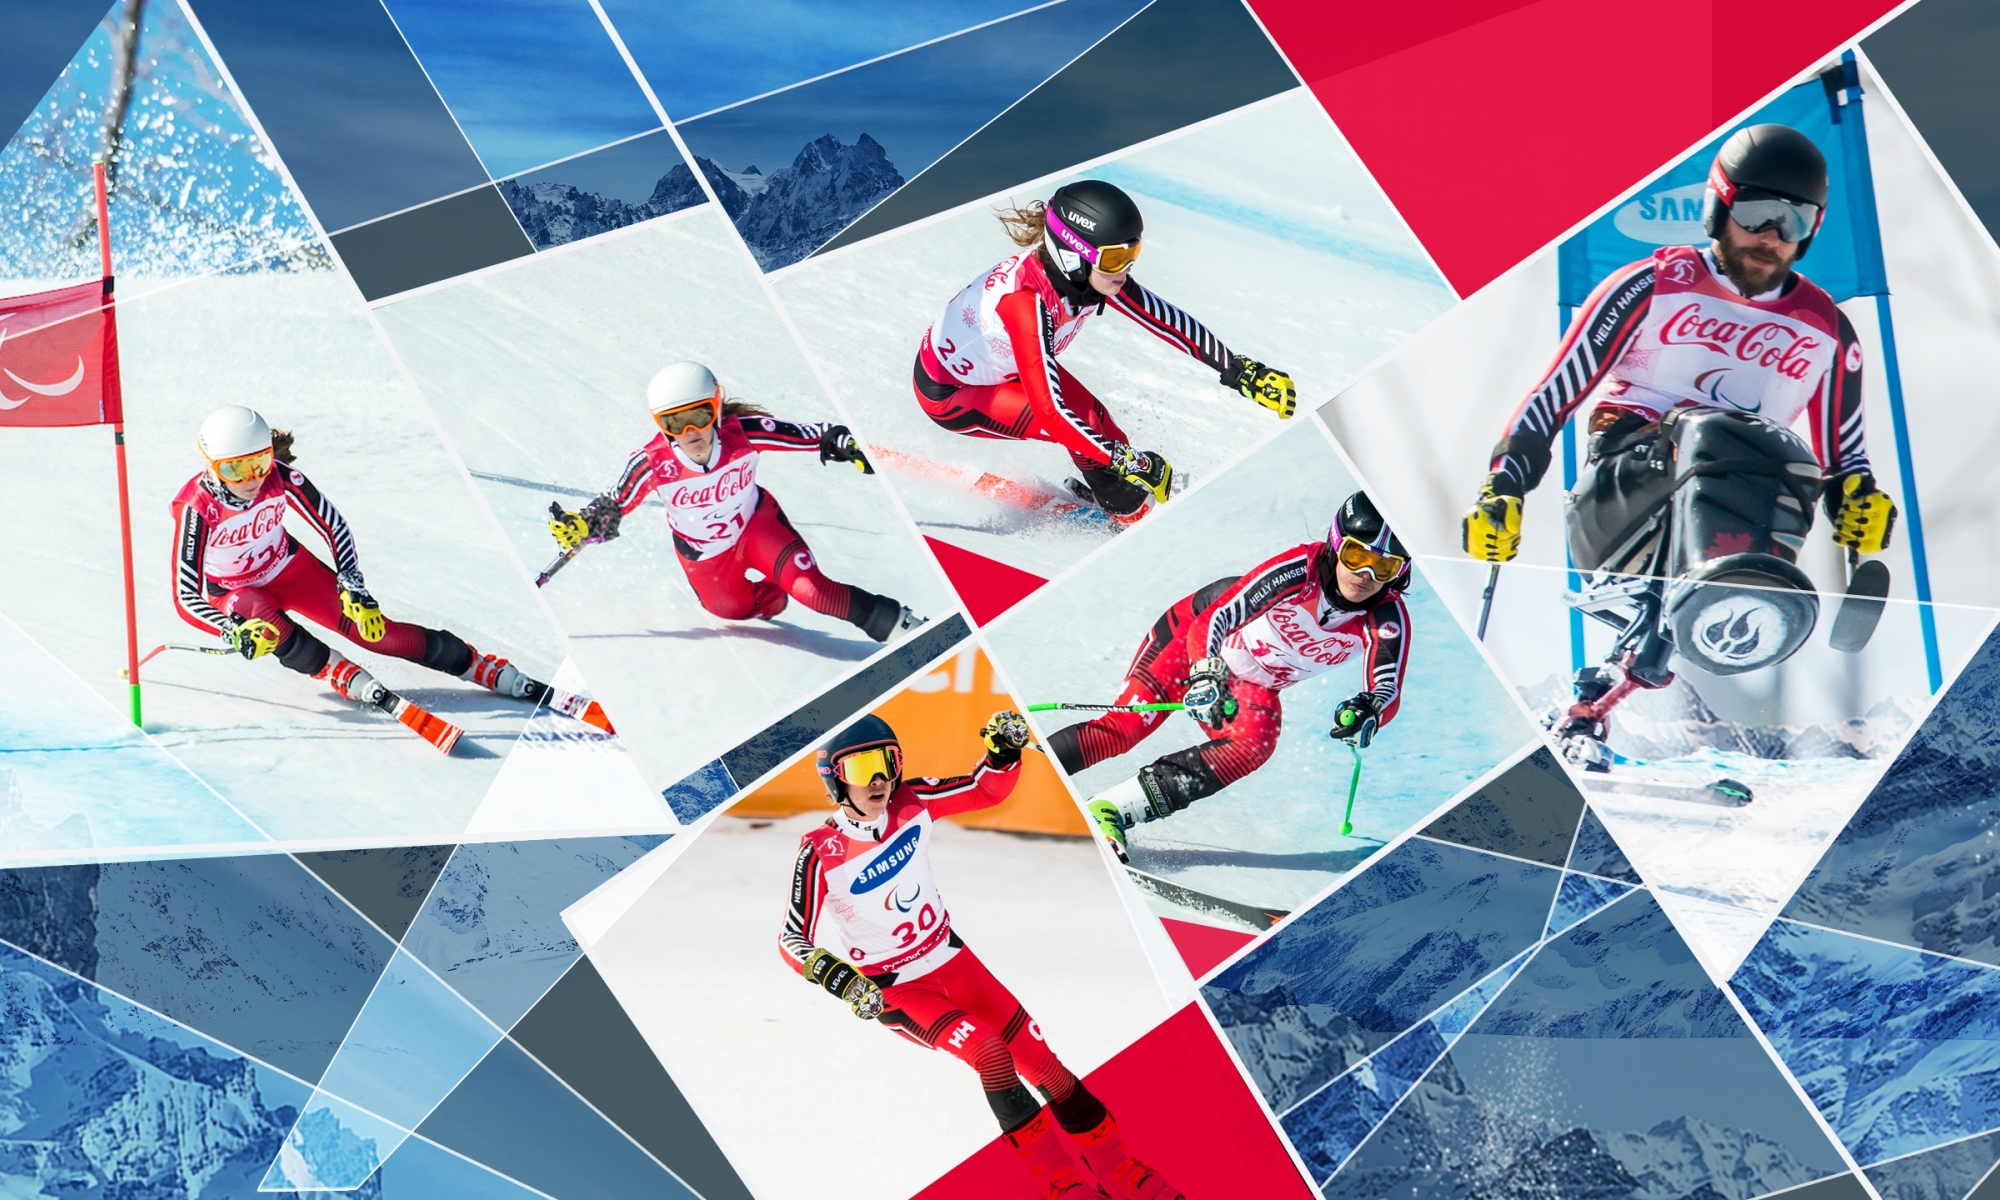 Background images of multiple athletes skiing around their gates